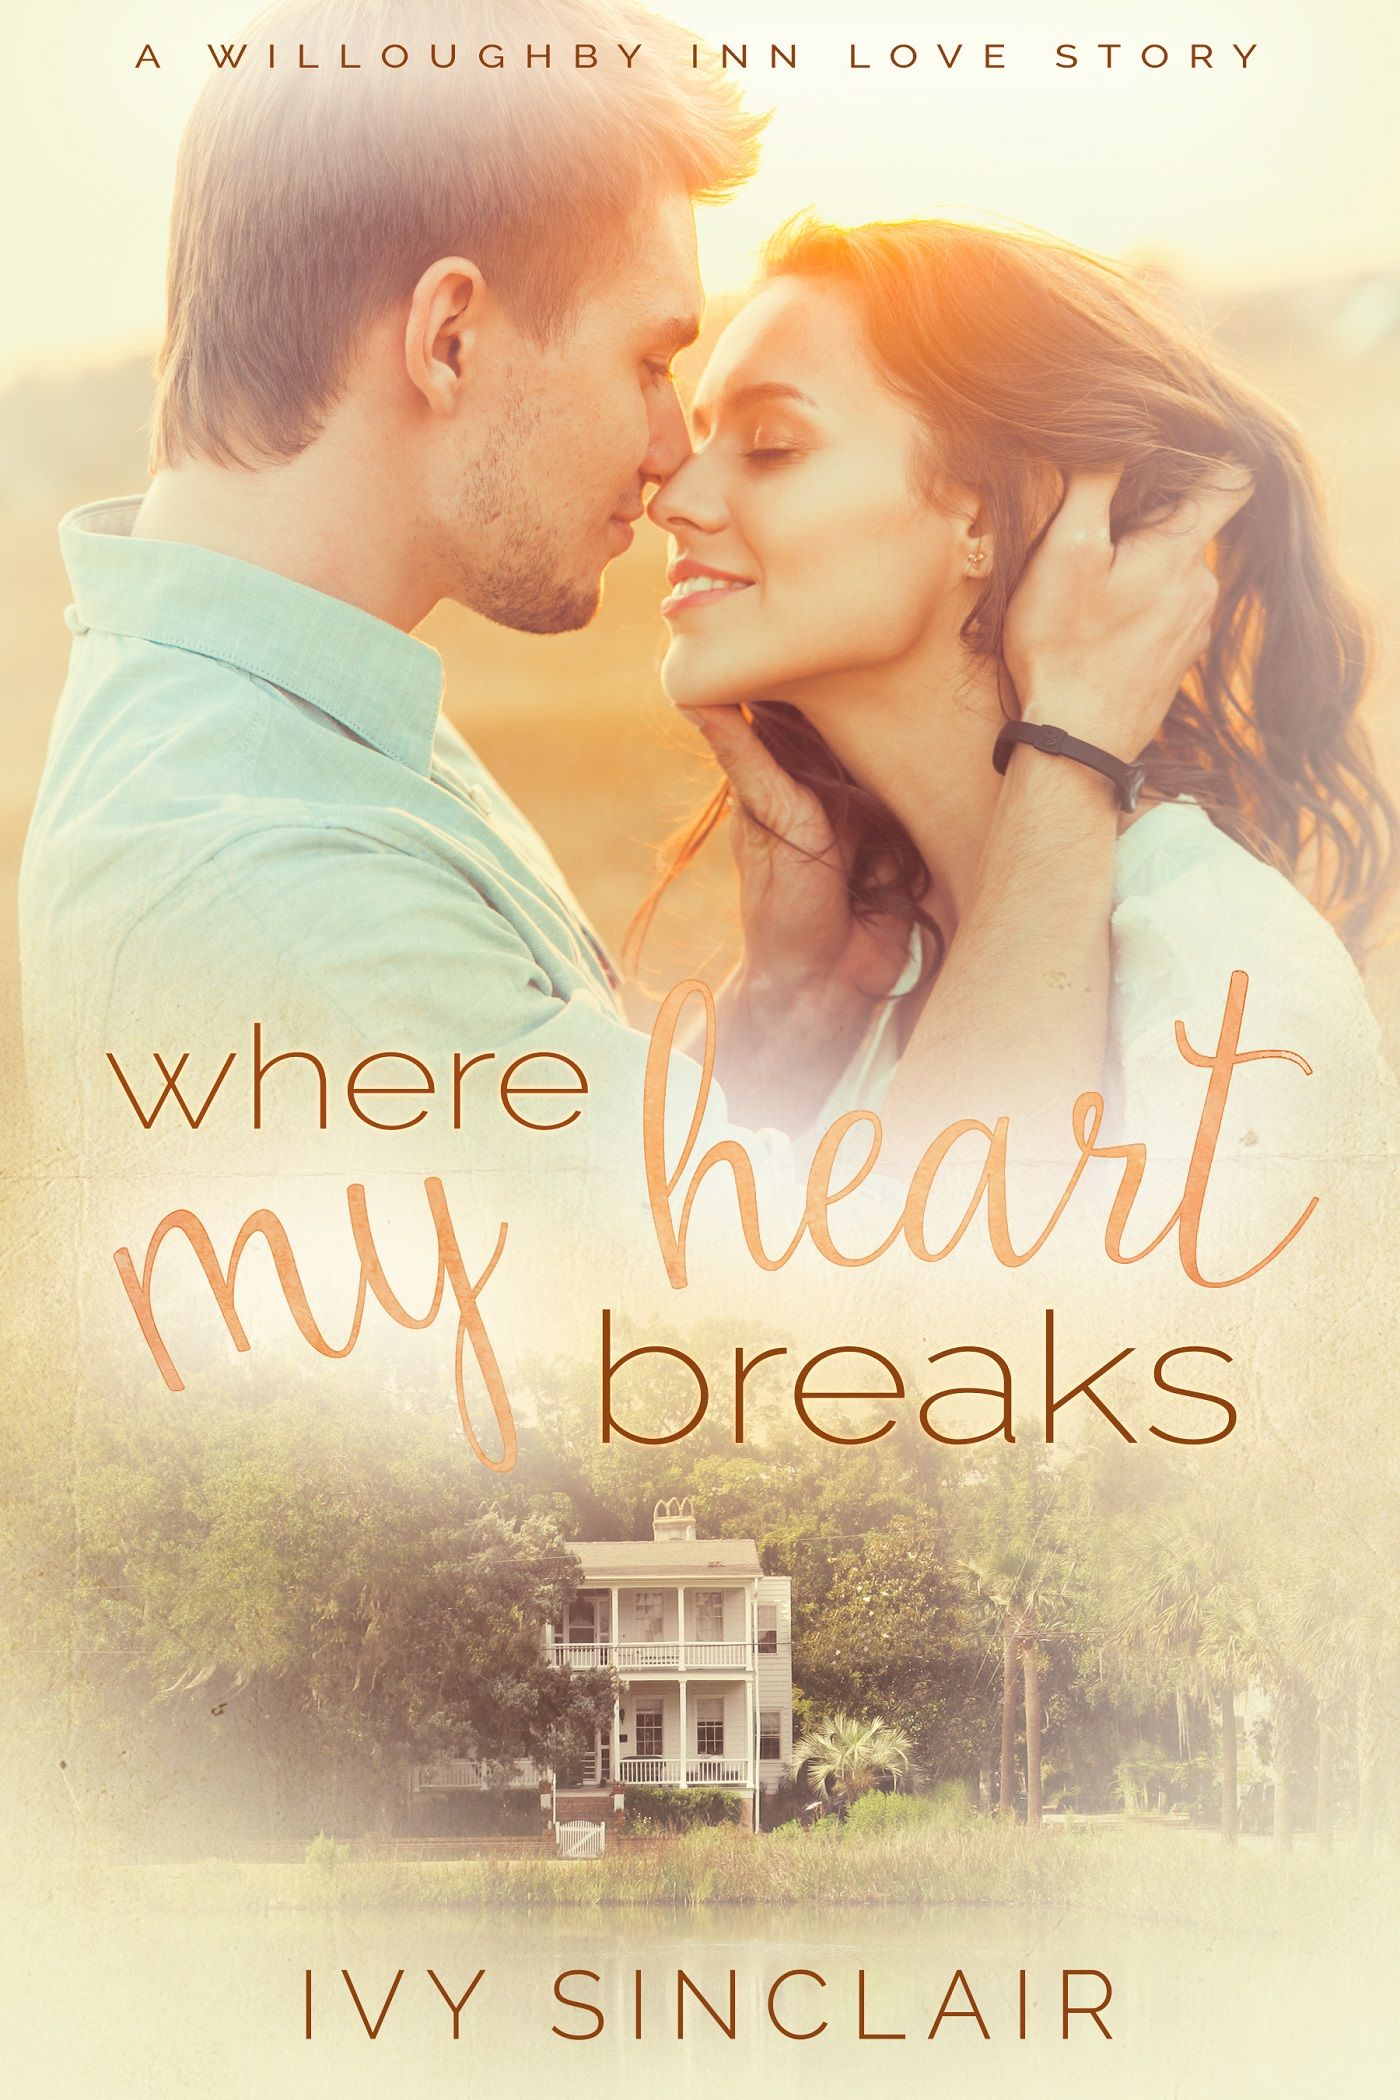 Where my heart breaks by ivy sinclair a willoughby inn love story where my heart breaks by ivy sinclair a willoughby inn love story free fandeluxe Gallery